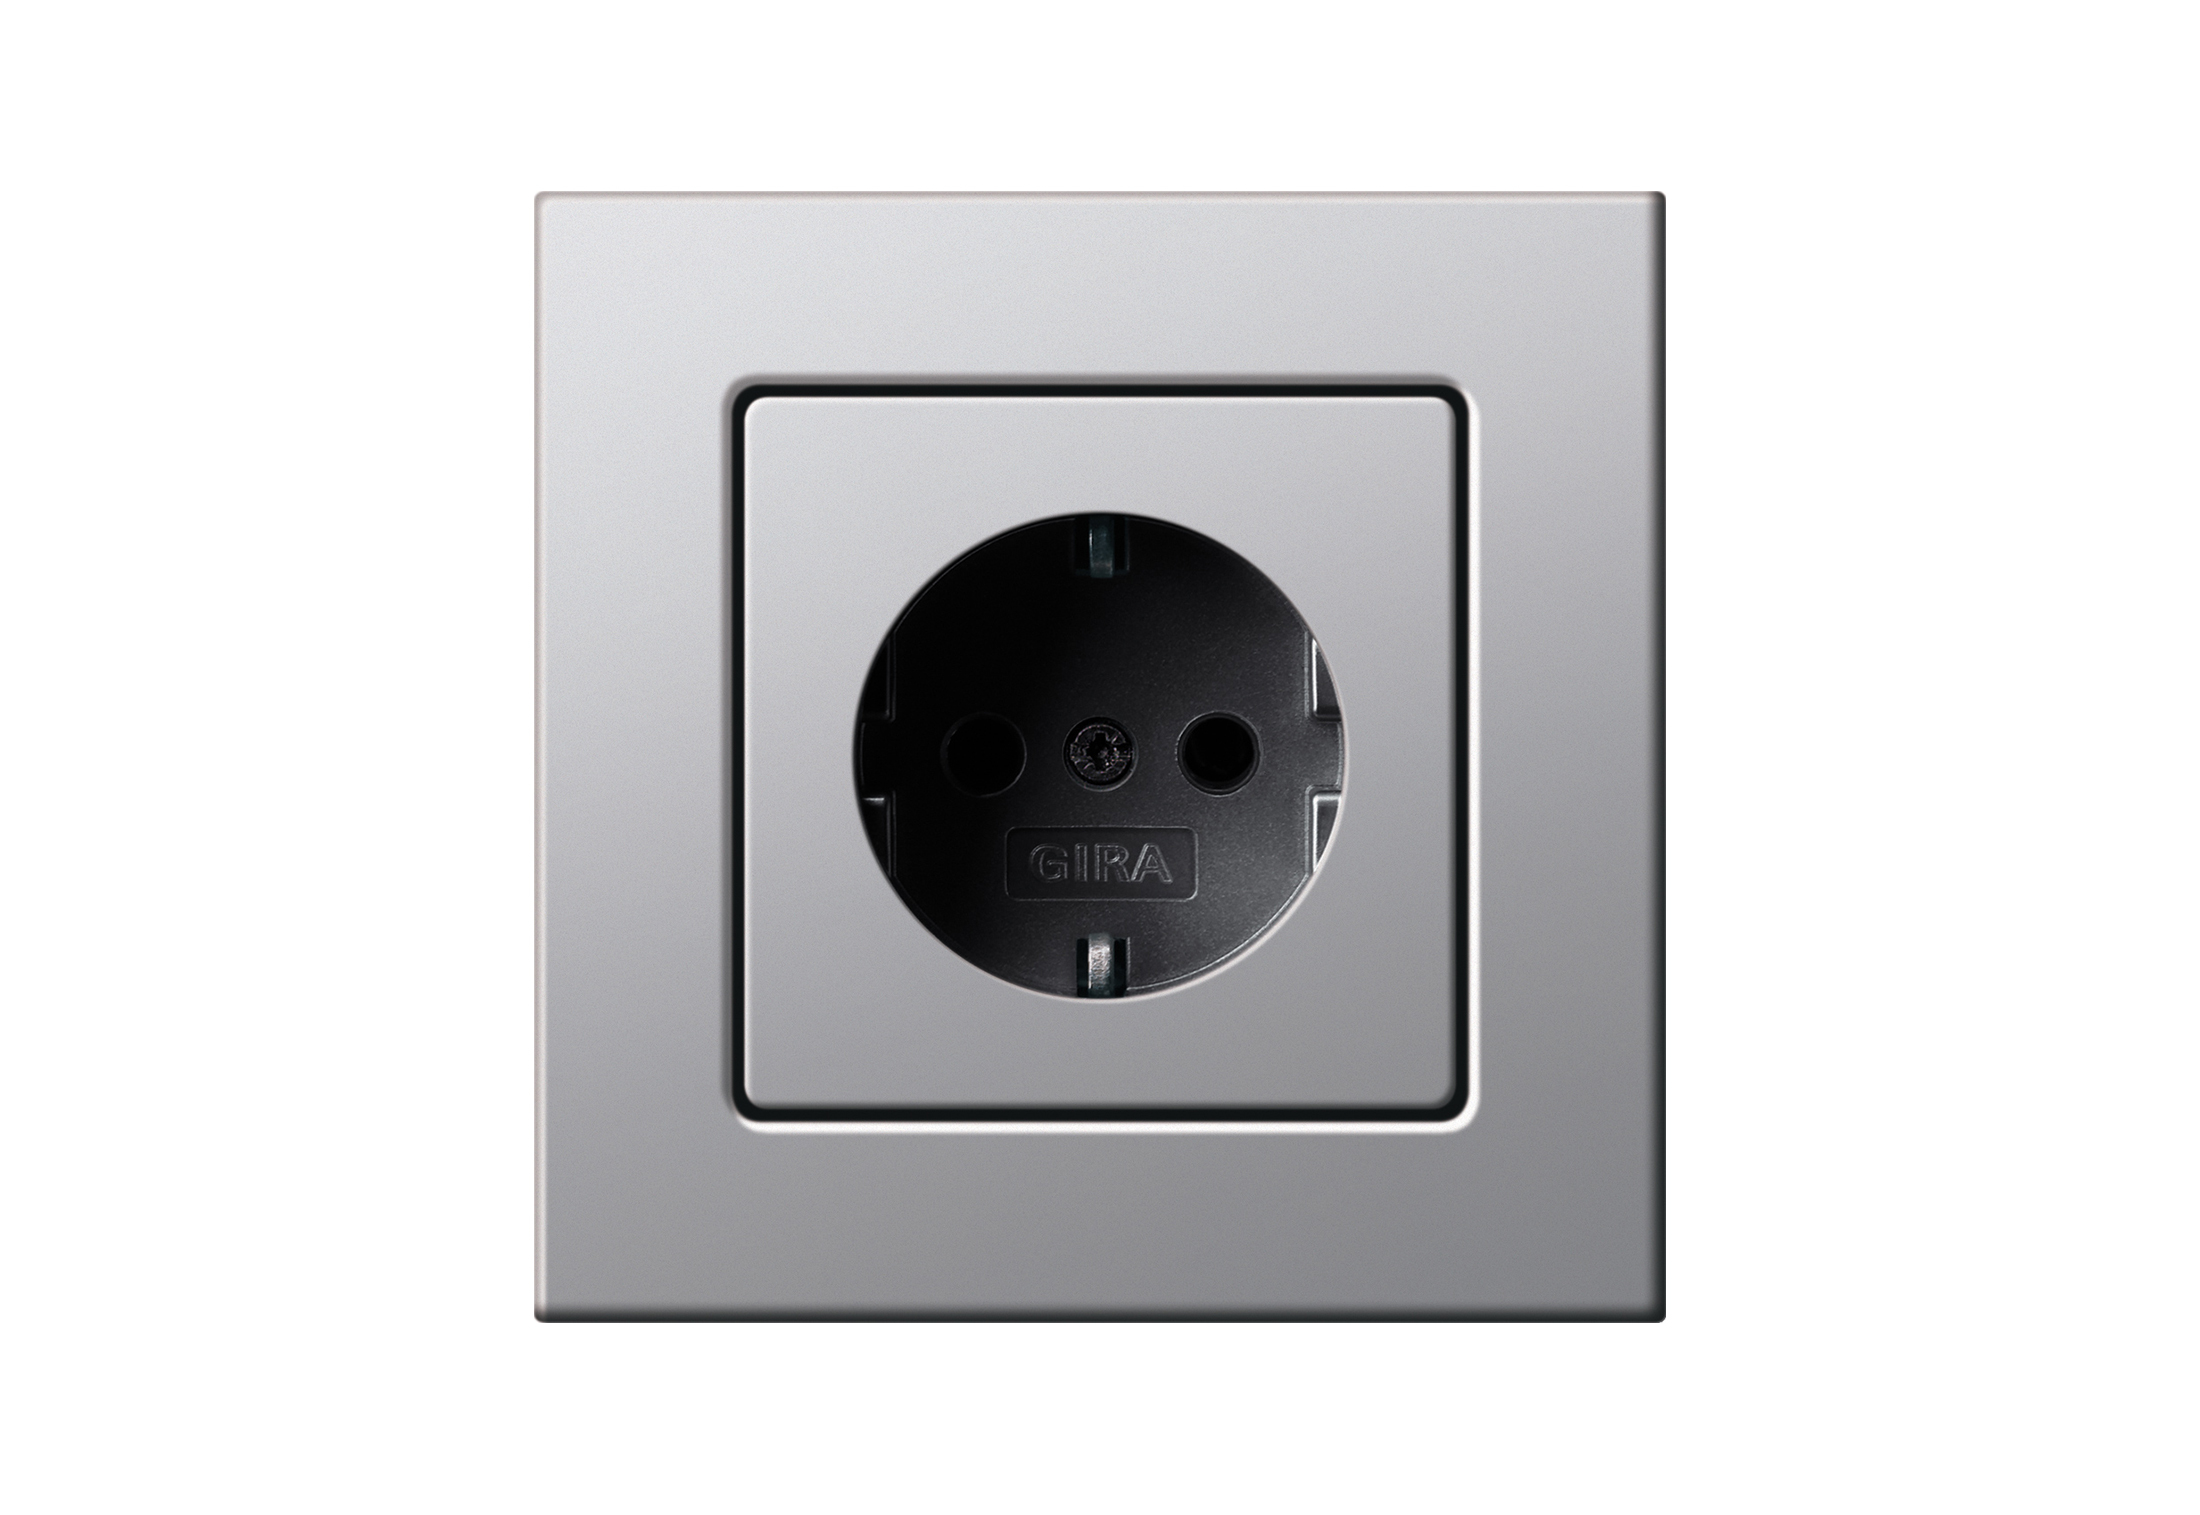 Design features of outlets and switches Gira (Gira) 7